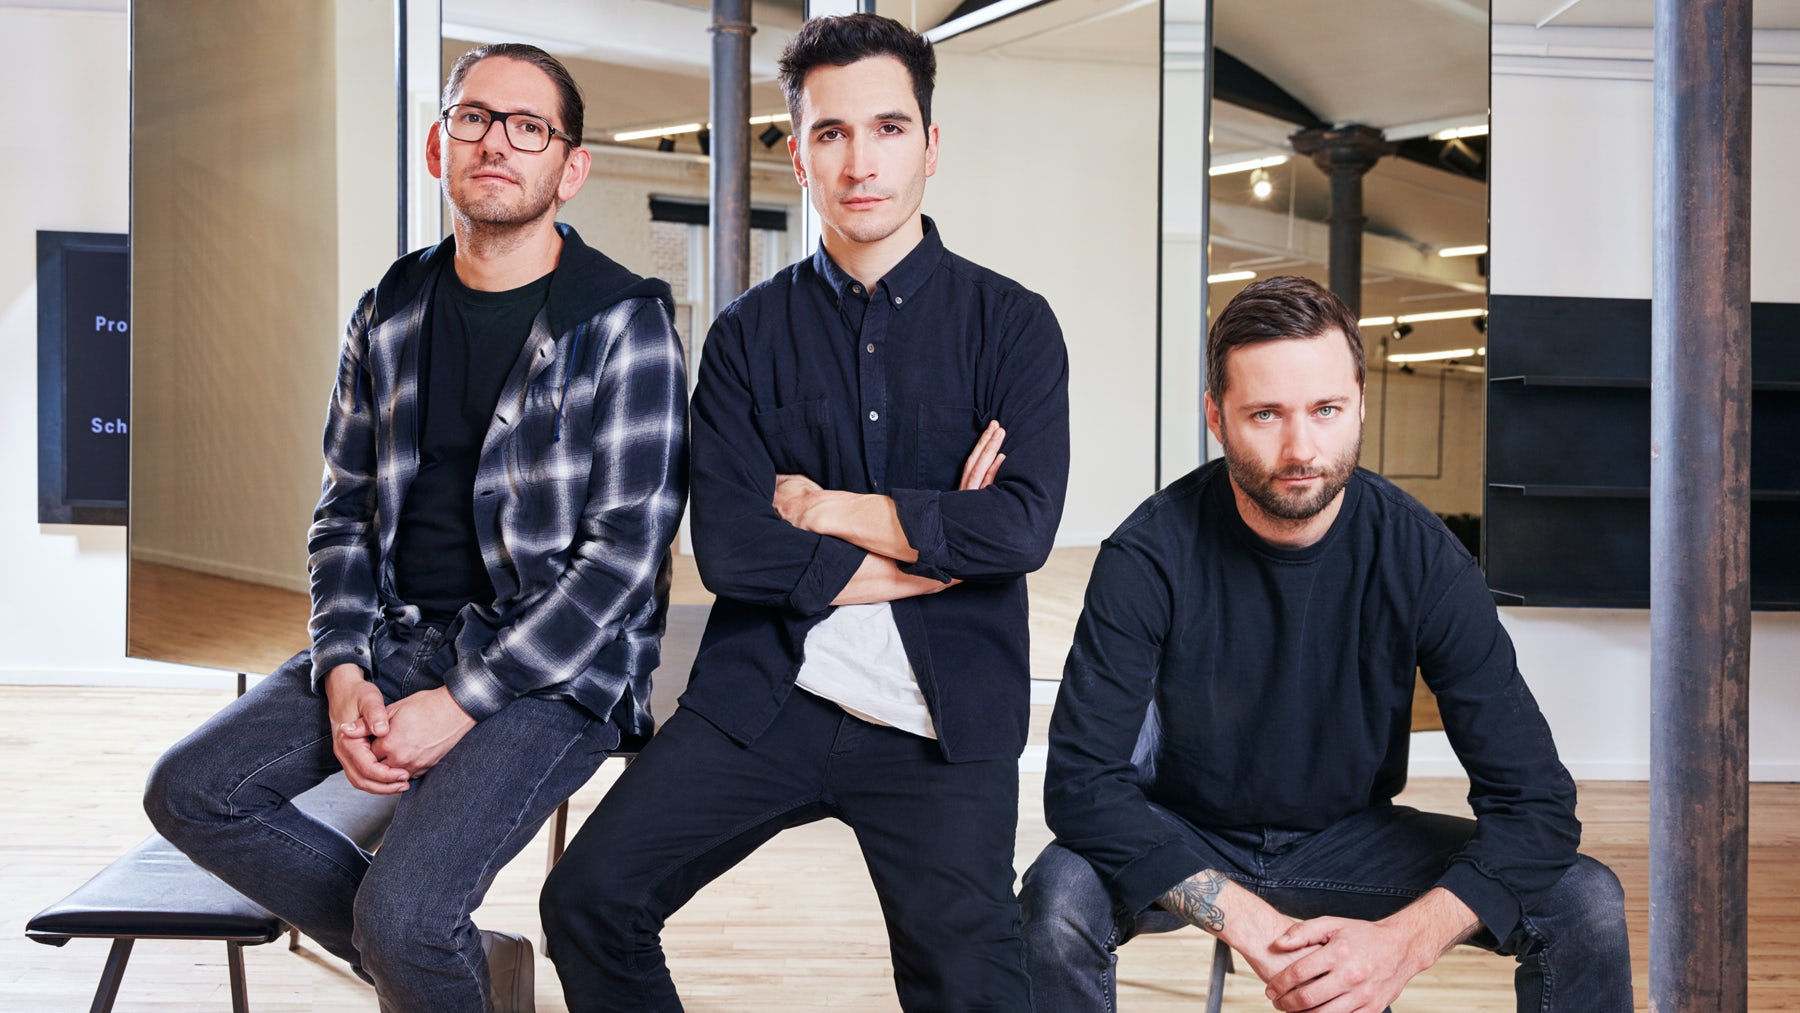 Proenza Schouler CEO Judd Crane, designers Lazaro Hernandez and Jack McCollough | Photo: Kevin Trageser